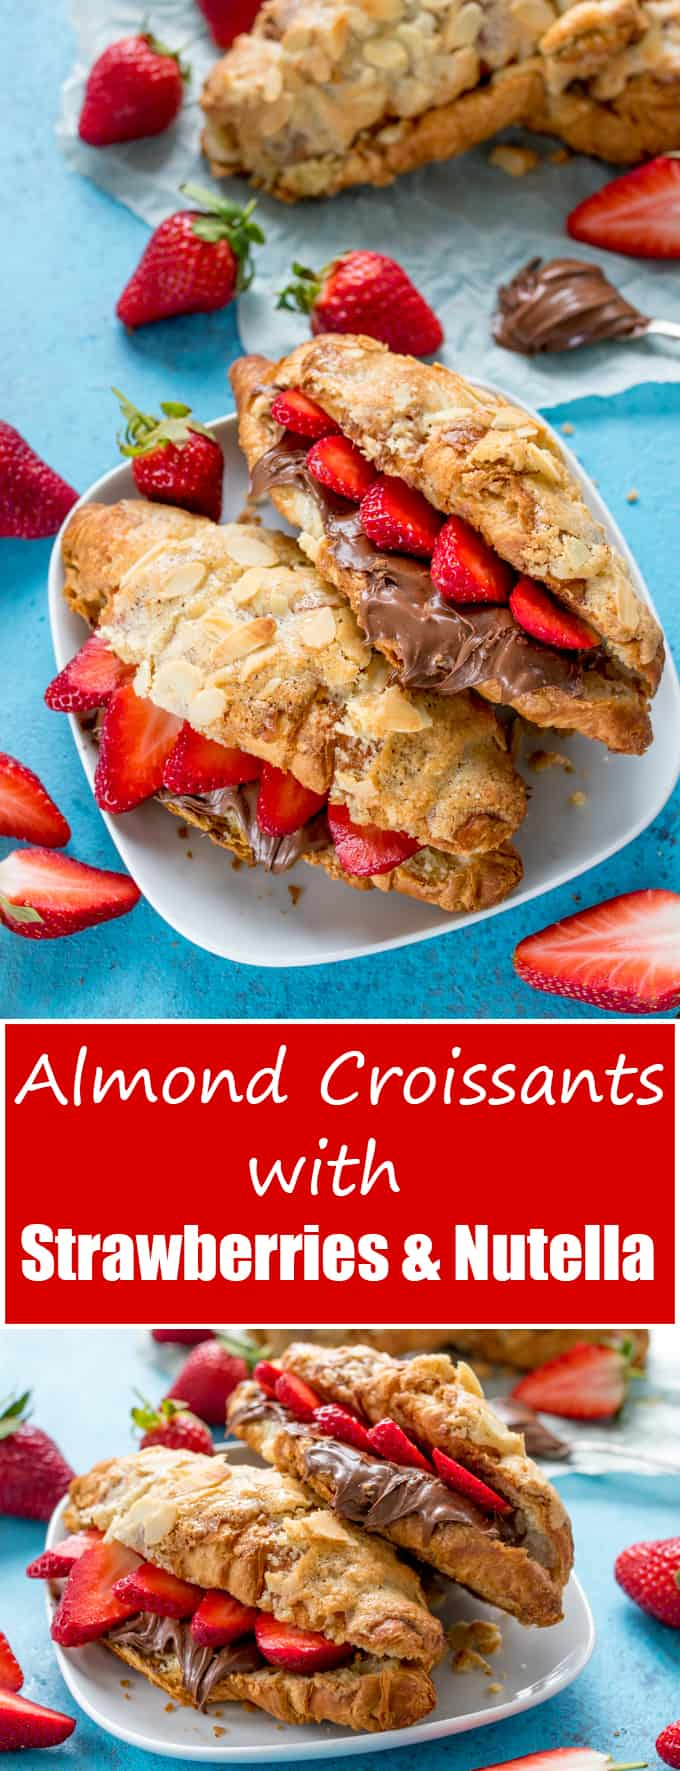 How To Turn Regular Croissants Into Almond Croissants (Then Stuff Them With Strawberries And Nutella!!) with easy homemade frangipane.